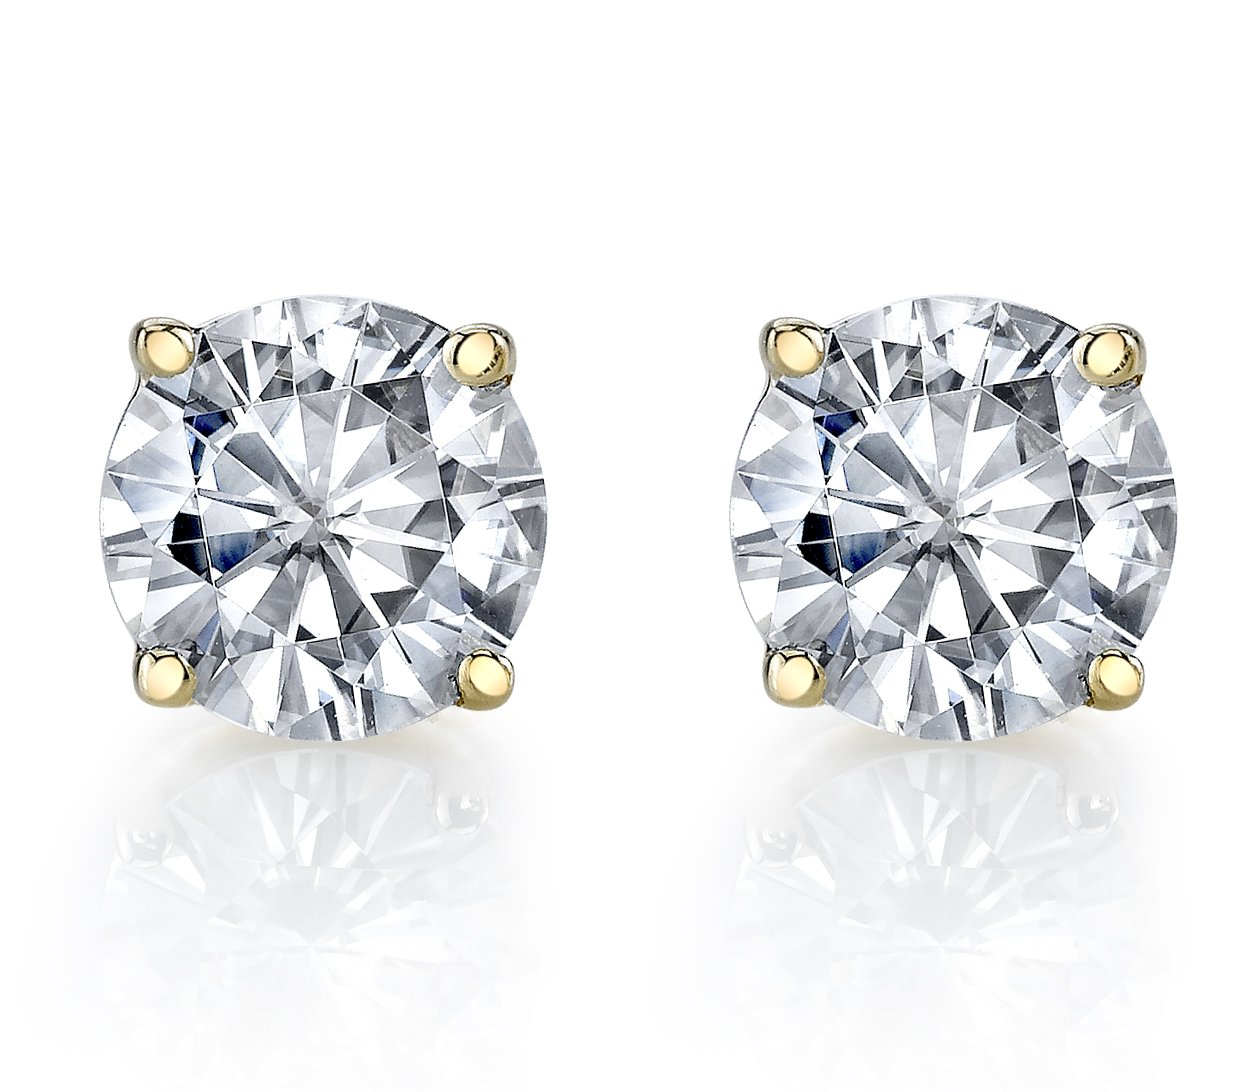 Charles & Colvard 6mm Forever Classic Moissanite Set in Solid 14k Yellow Gold 4 Prong Screw Back Stud Earrings (1.36cttw Moissanite, 1.60ct DEW, Near Colorless)